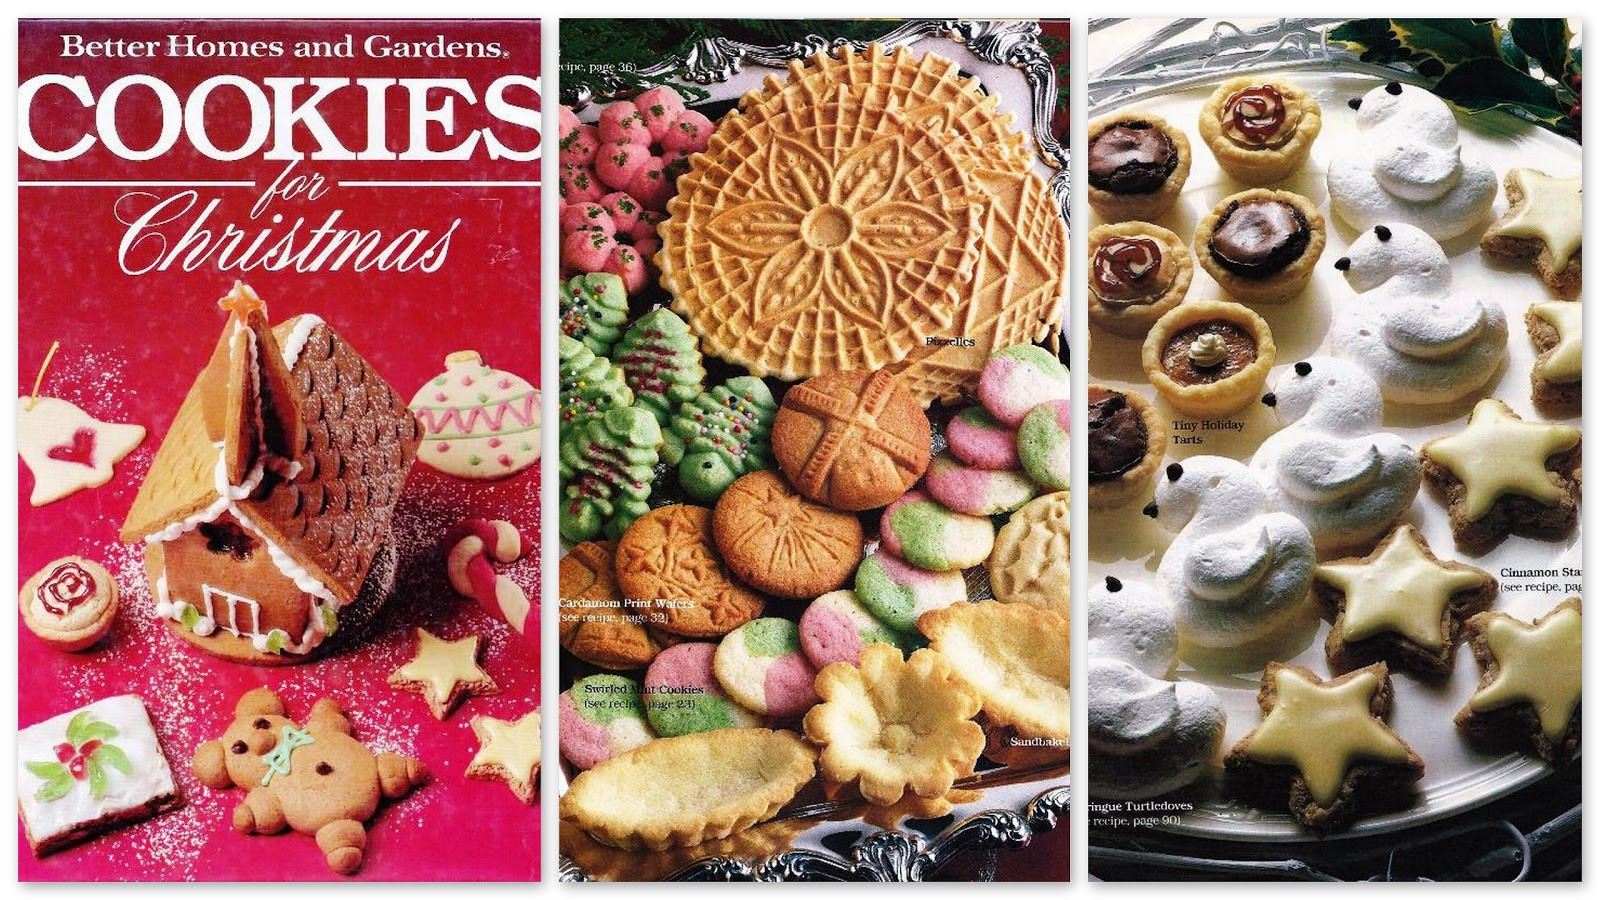 Better Homes And Gardens Christmas Cookies  The Iowa Housewife Cookbook Reviews Better Homes and